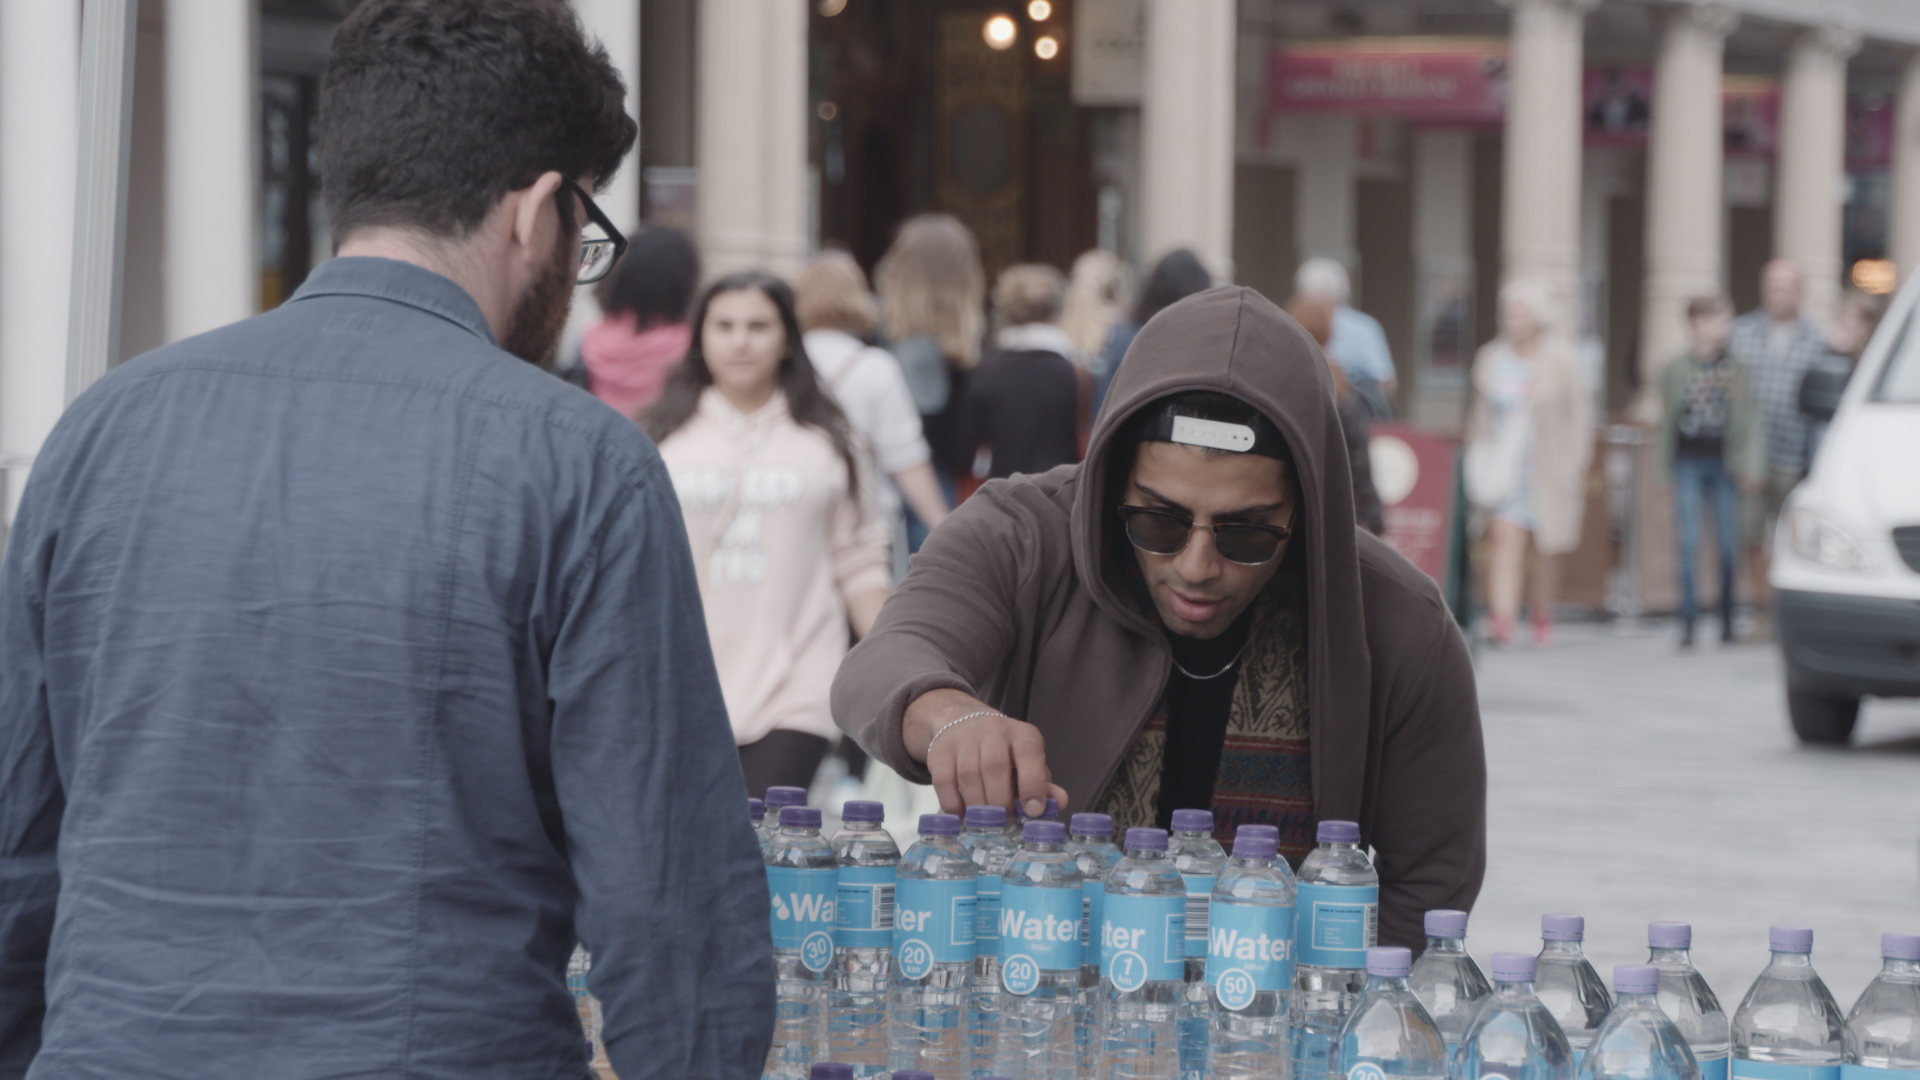 A man in a hoodie reaches for a bottle of water while a man in a grey shirt looks on.